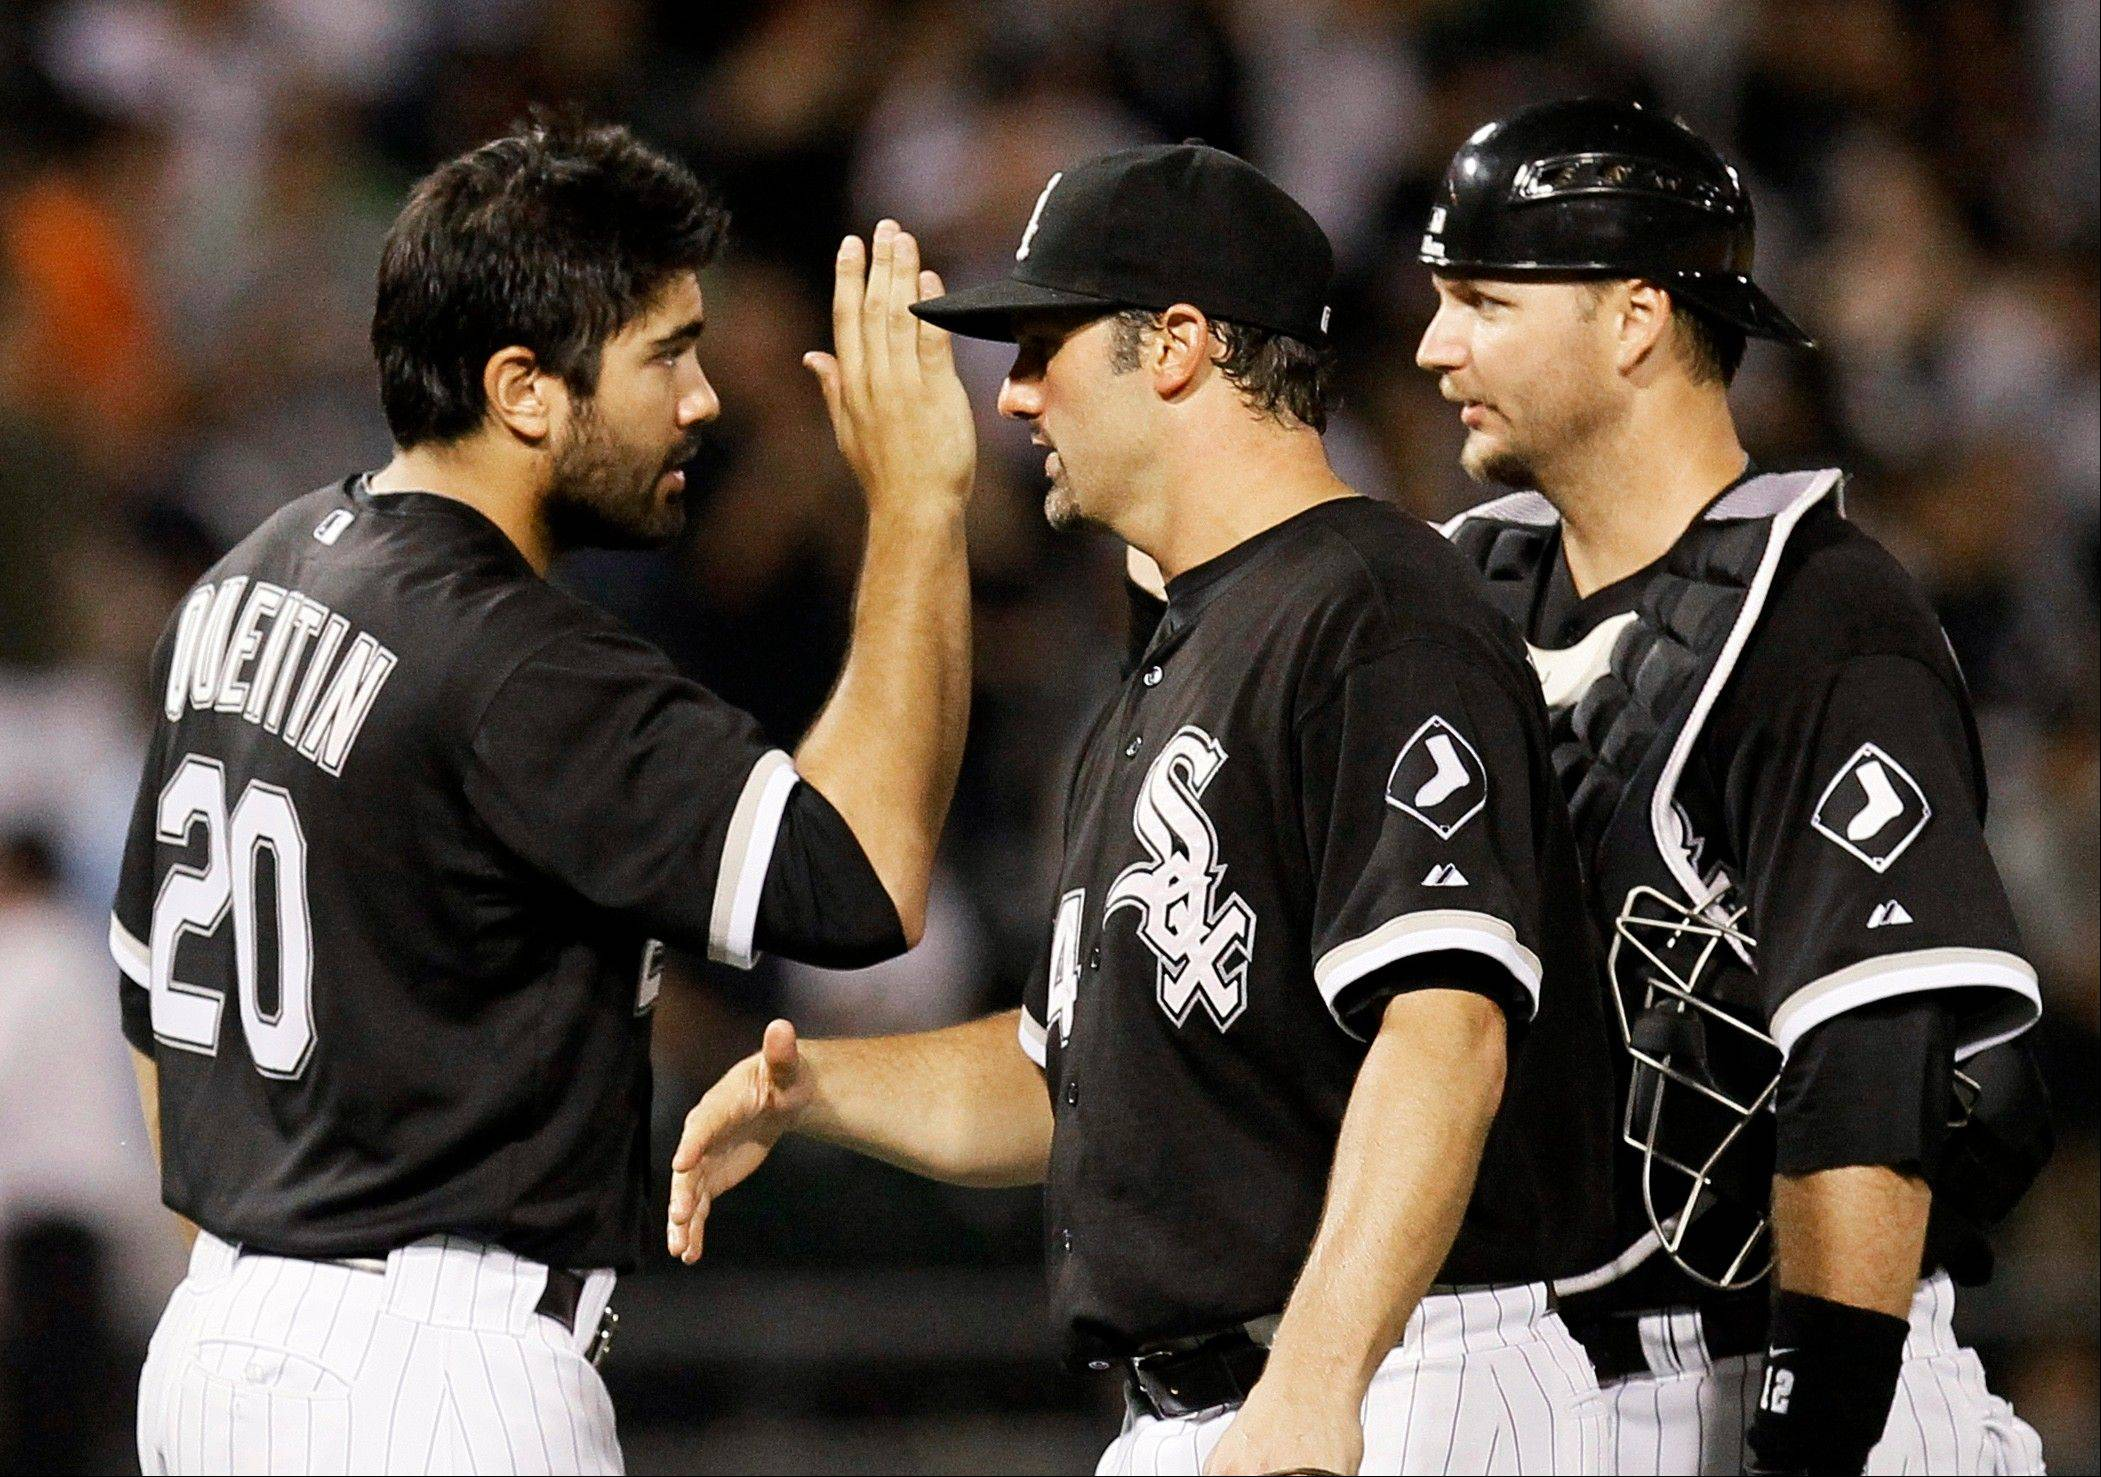 Sox outfielder Carlos Quentin, left, celebrates Monday with Paul Konerko, center, and A.J. Pierzynski after Chicago's 6-3 w